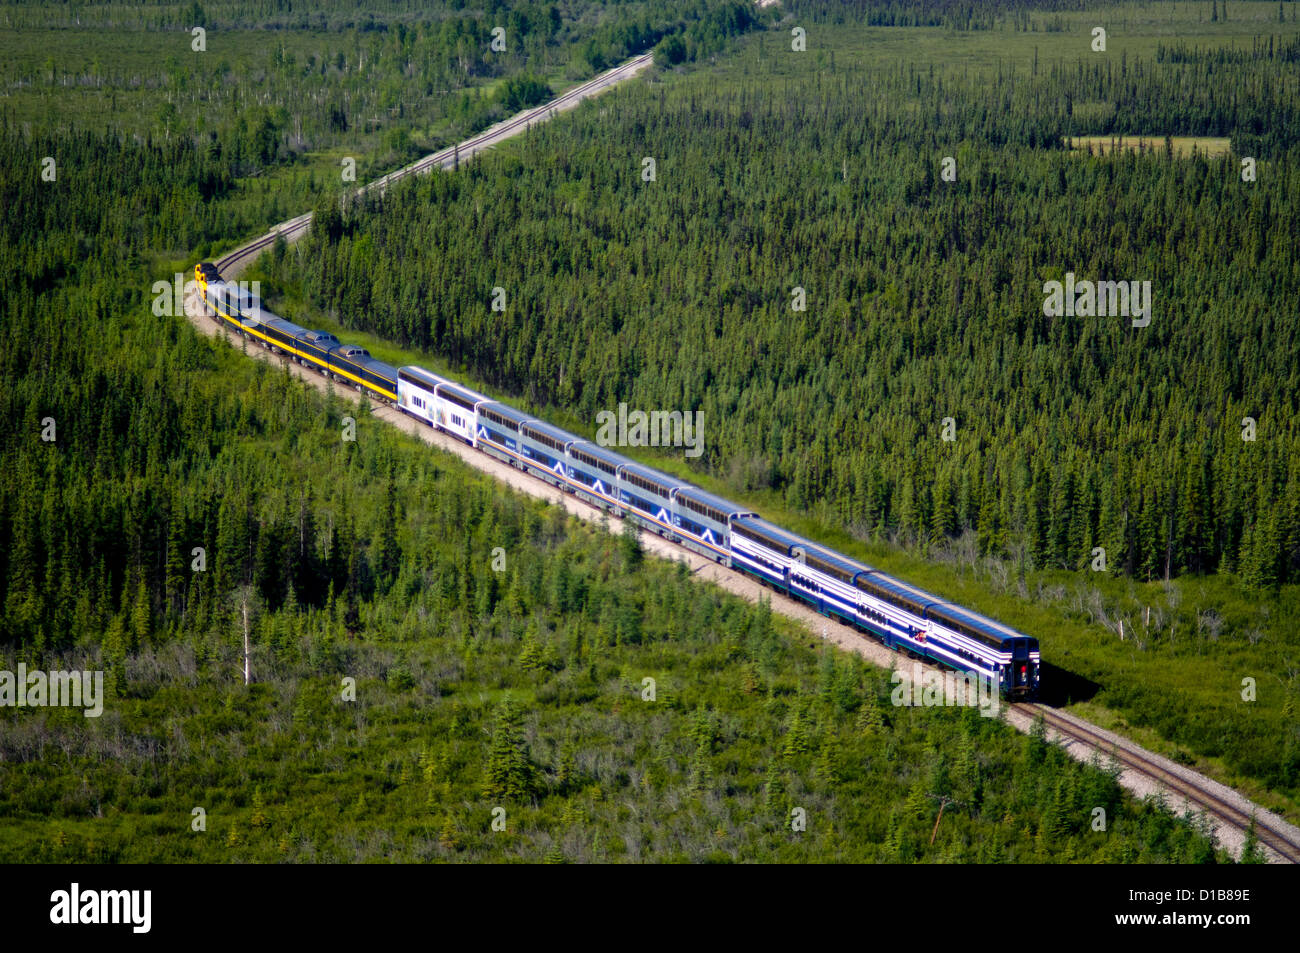 Aerial photo of the Alaska Railroad southbound train from Fairbanks through Denali to Anchorage. - Stock Image